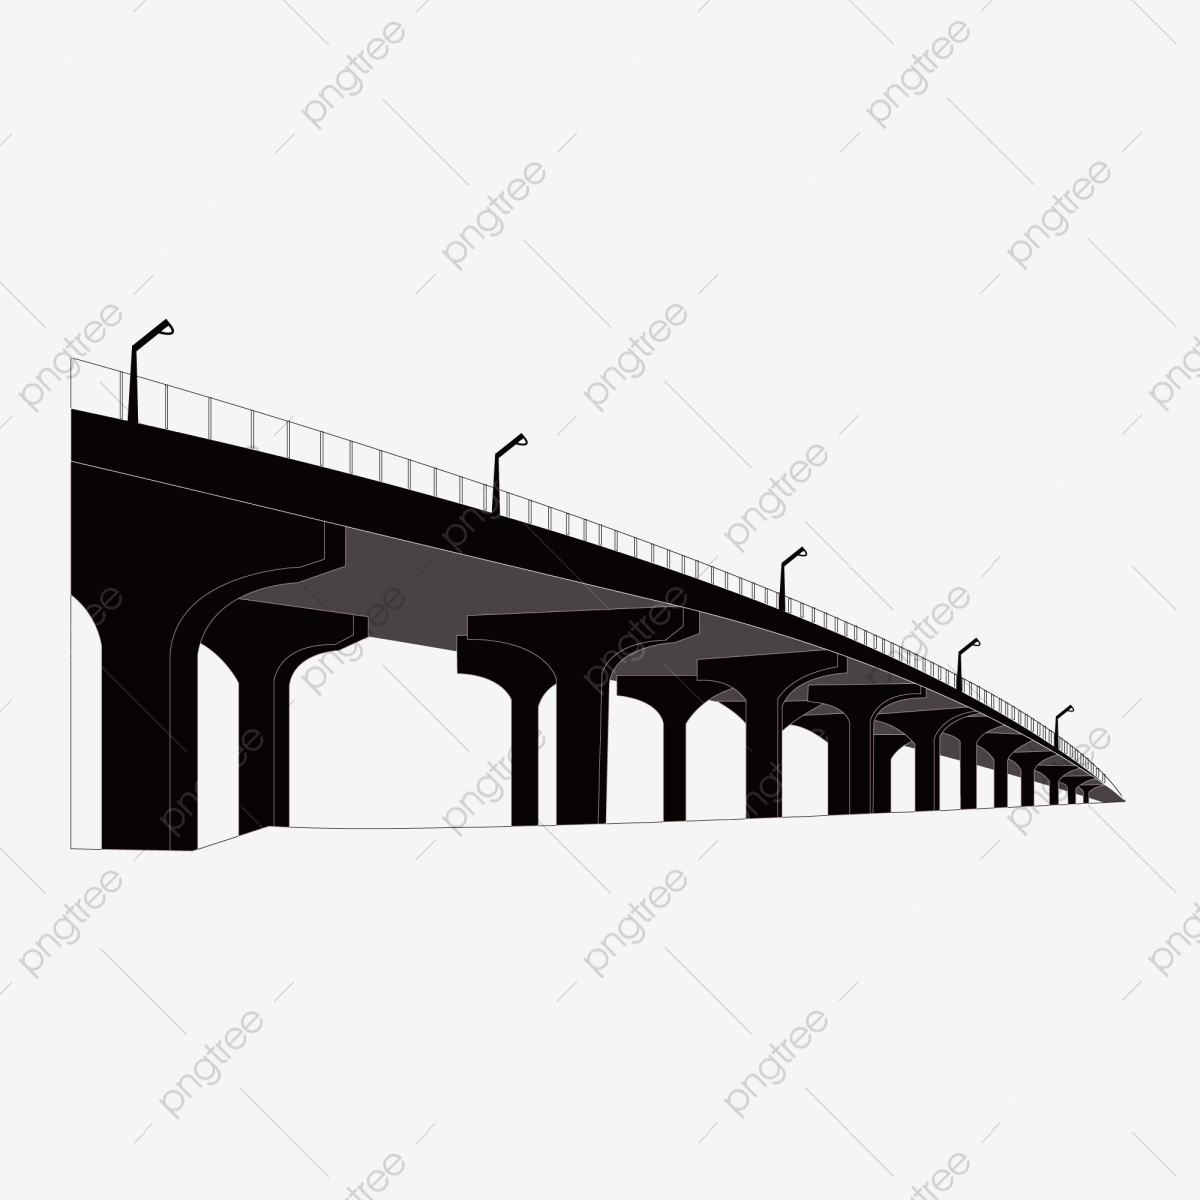 hight resolution of commercial use resource upgrade to premium plan and get license authorization upgradenow scenic bridge bridge clipart